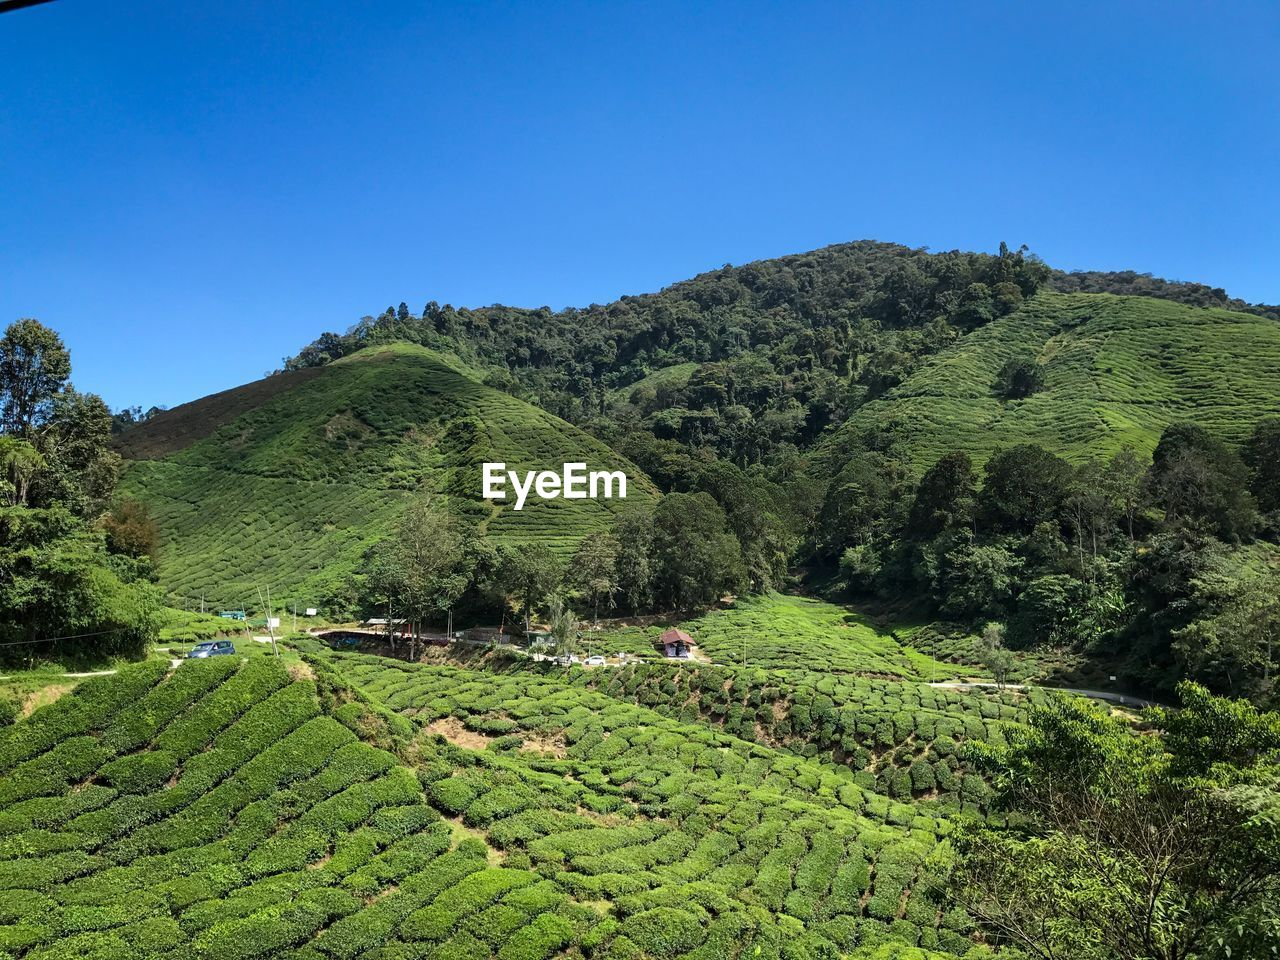 plant, tree, green color, growth, sky, scenics - nature, beauty in nature, tranquility, nature, tranquil scene, landscape, land, agriculture, mountain, clear sky, environment, day, field, foliage, lush foliage, no people, outdoors, tea crop, plantation